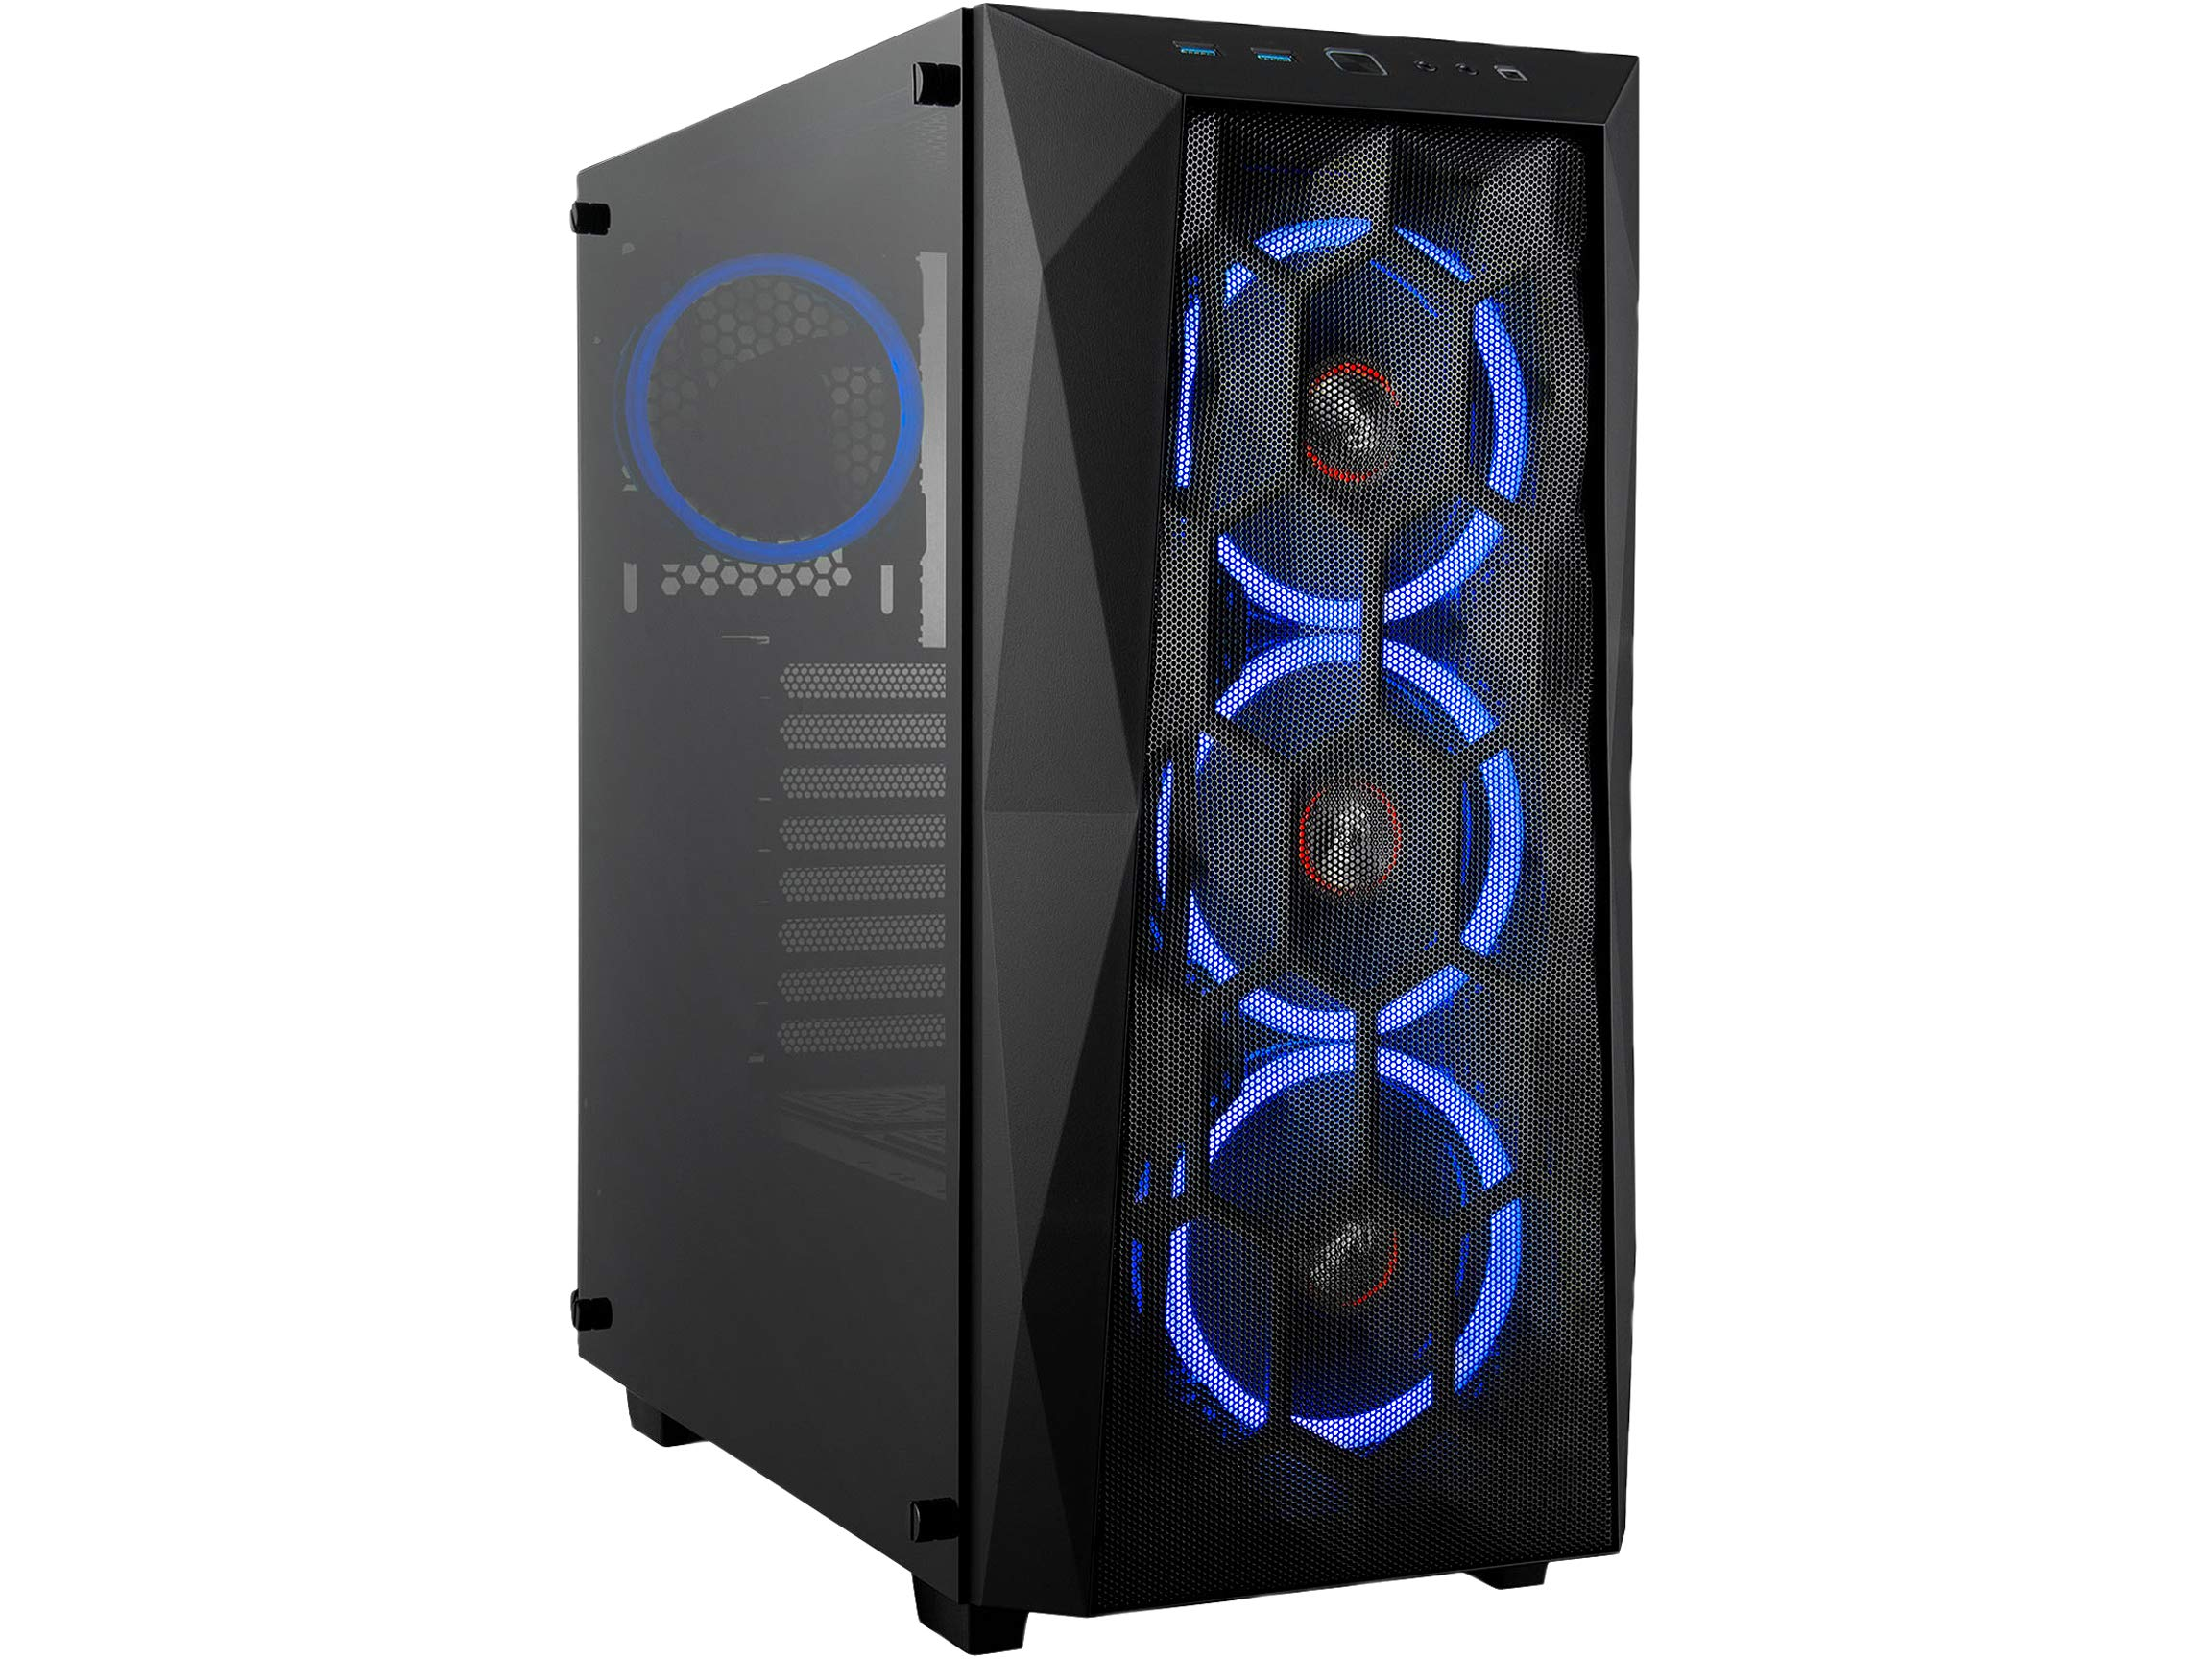 Rosewill ATX Mid Tower Gaming PC Computer Case with Tempered Glass/Steel/Mesh, Includes 4 x 120mm Blue LED Fans, 240mm AIO Liquid Cooler and 330mm VGA Support - Spectra X-Blue